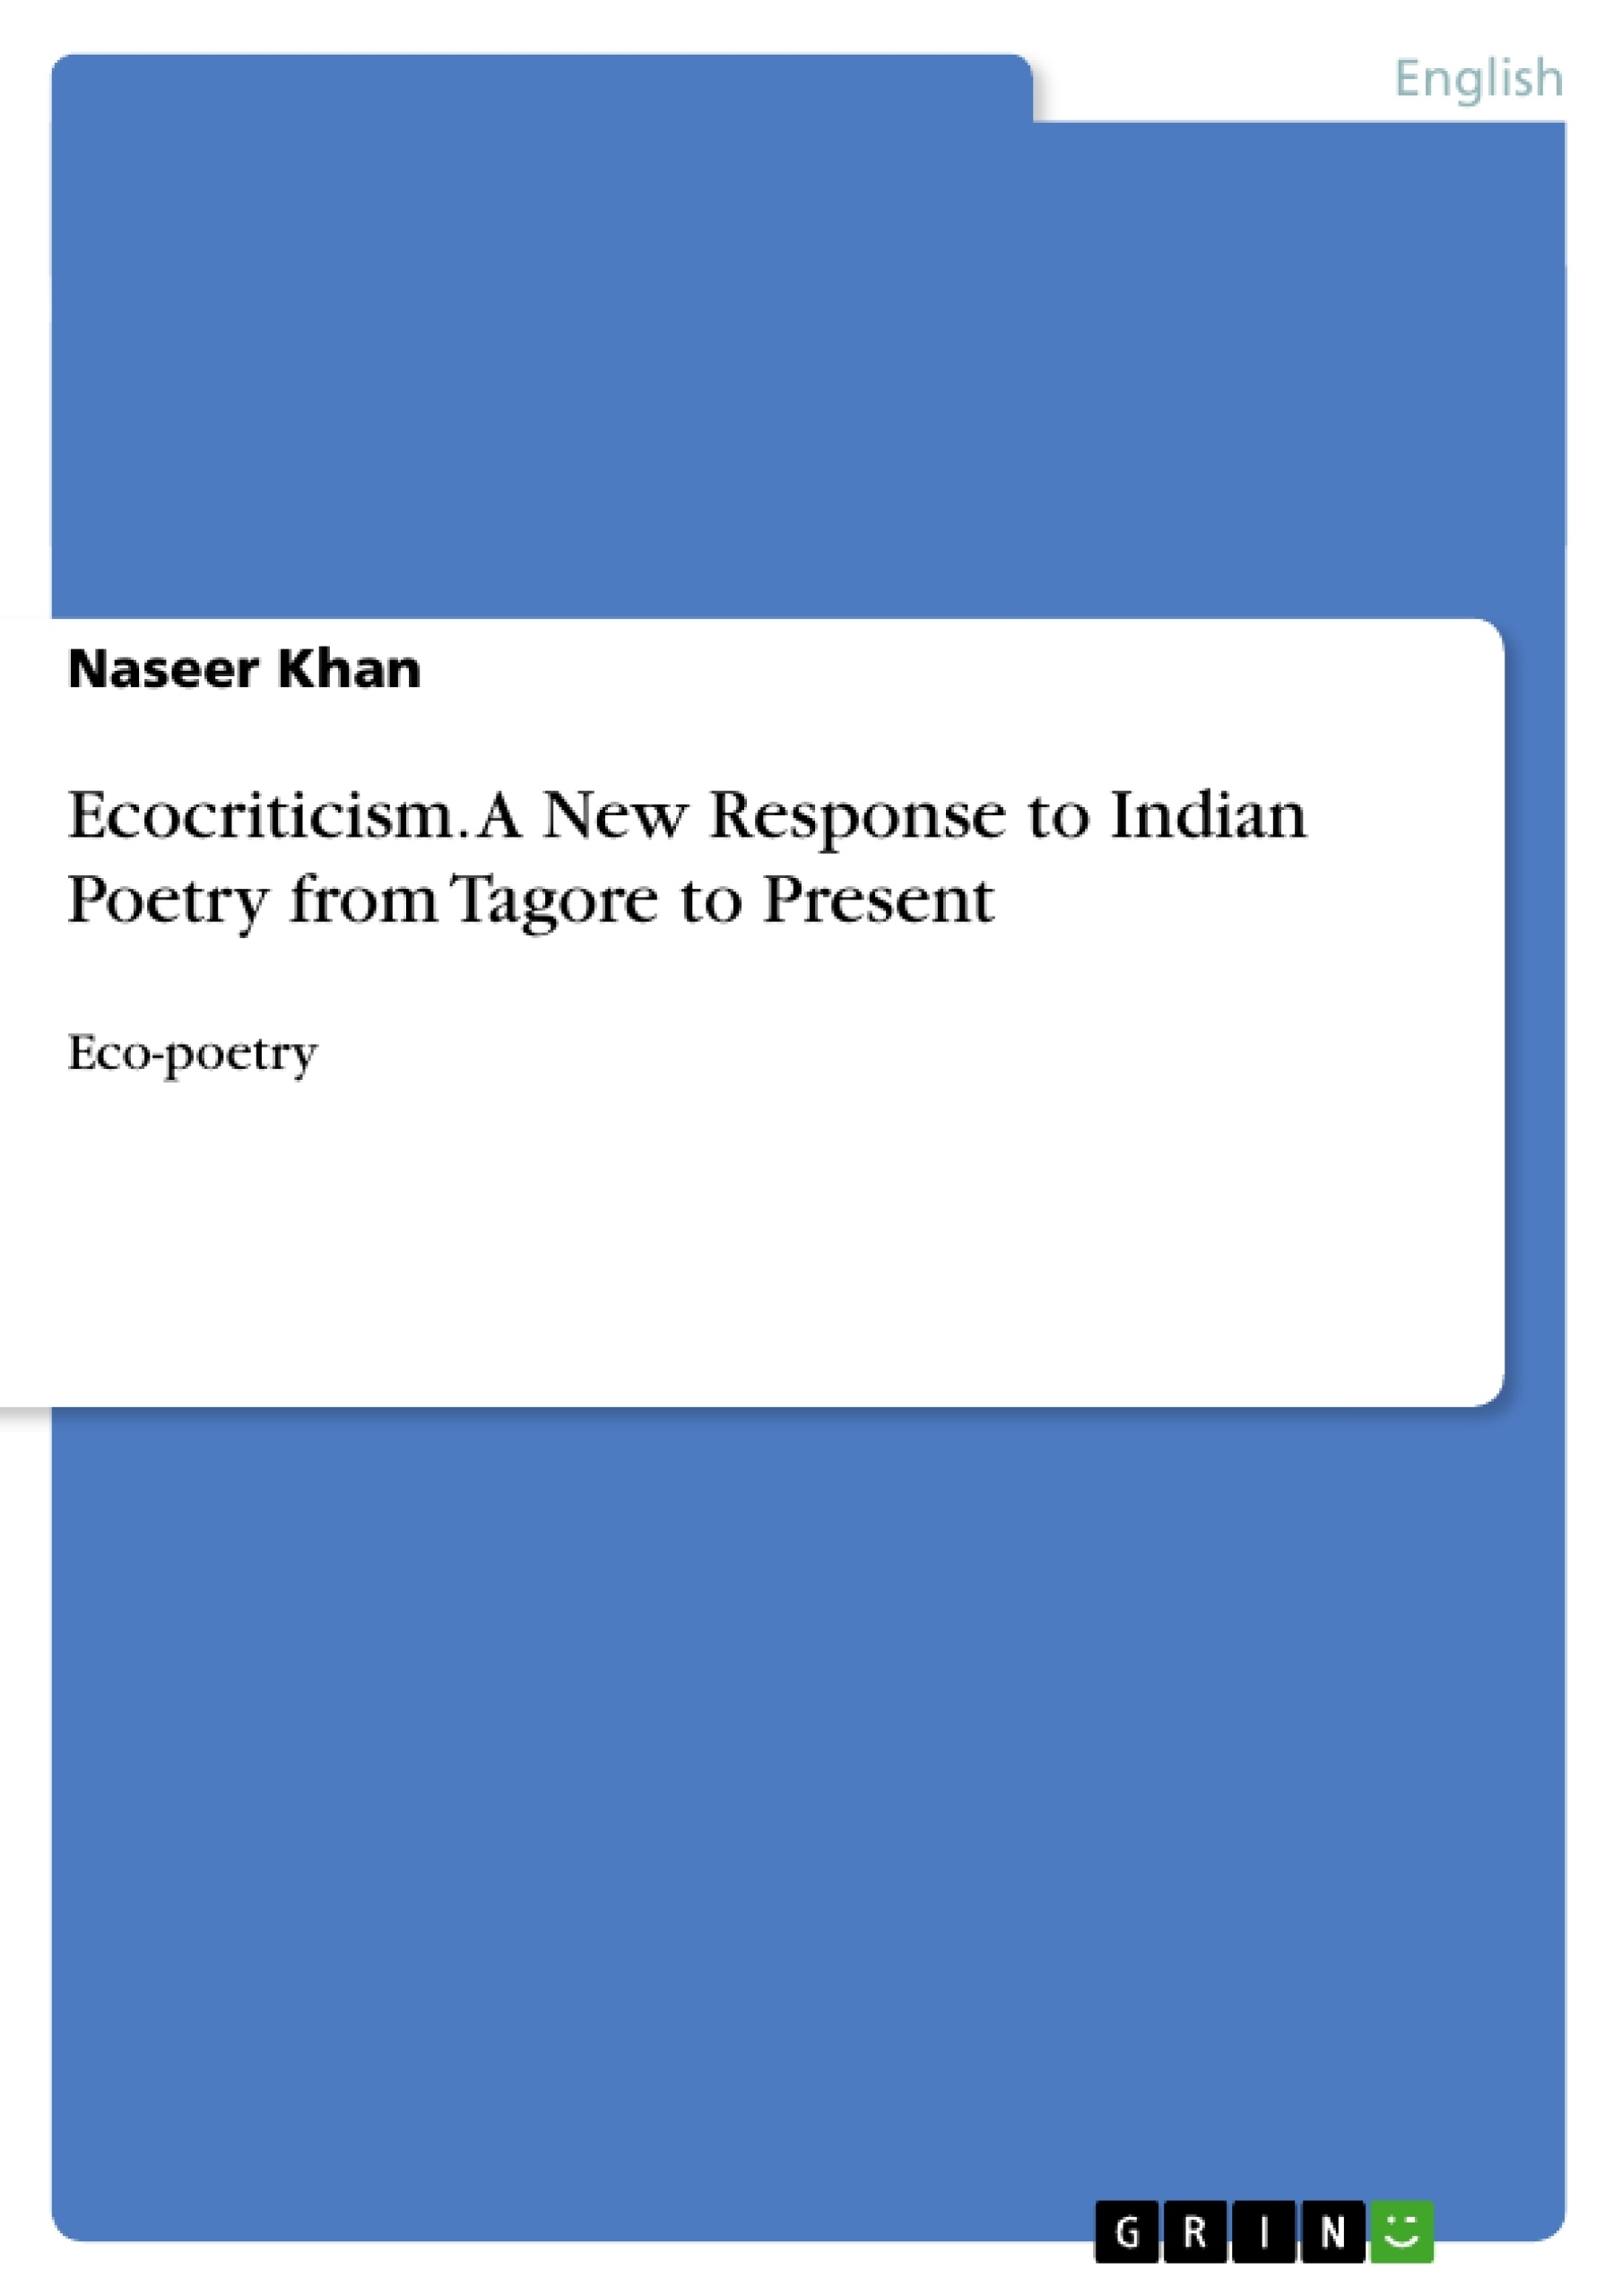 Title: Ecocriticism. A New Response to Indian Poetry from Tagore to Present